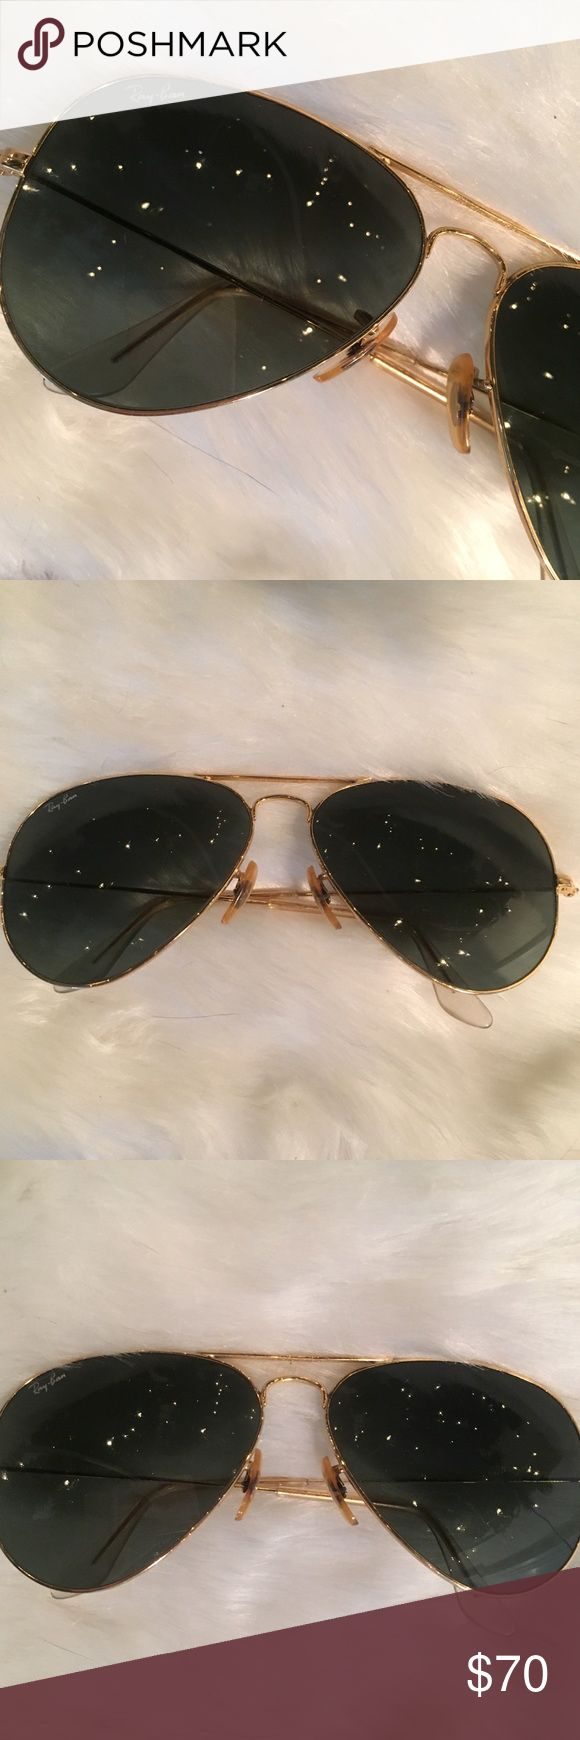 Ray Ban Aviator sunglasses Original Ray ban LARGE aviator sunglasses. Gold frame and green lens. No scratches on lens! Come with Ray ban case Ray-Ban Accessories Sunglasses